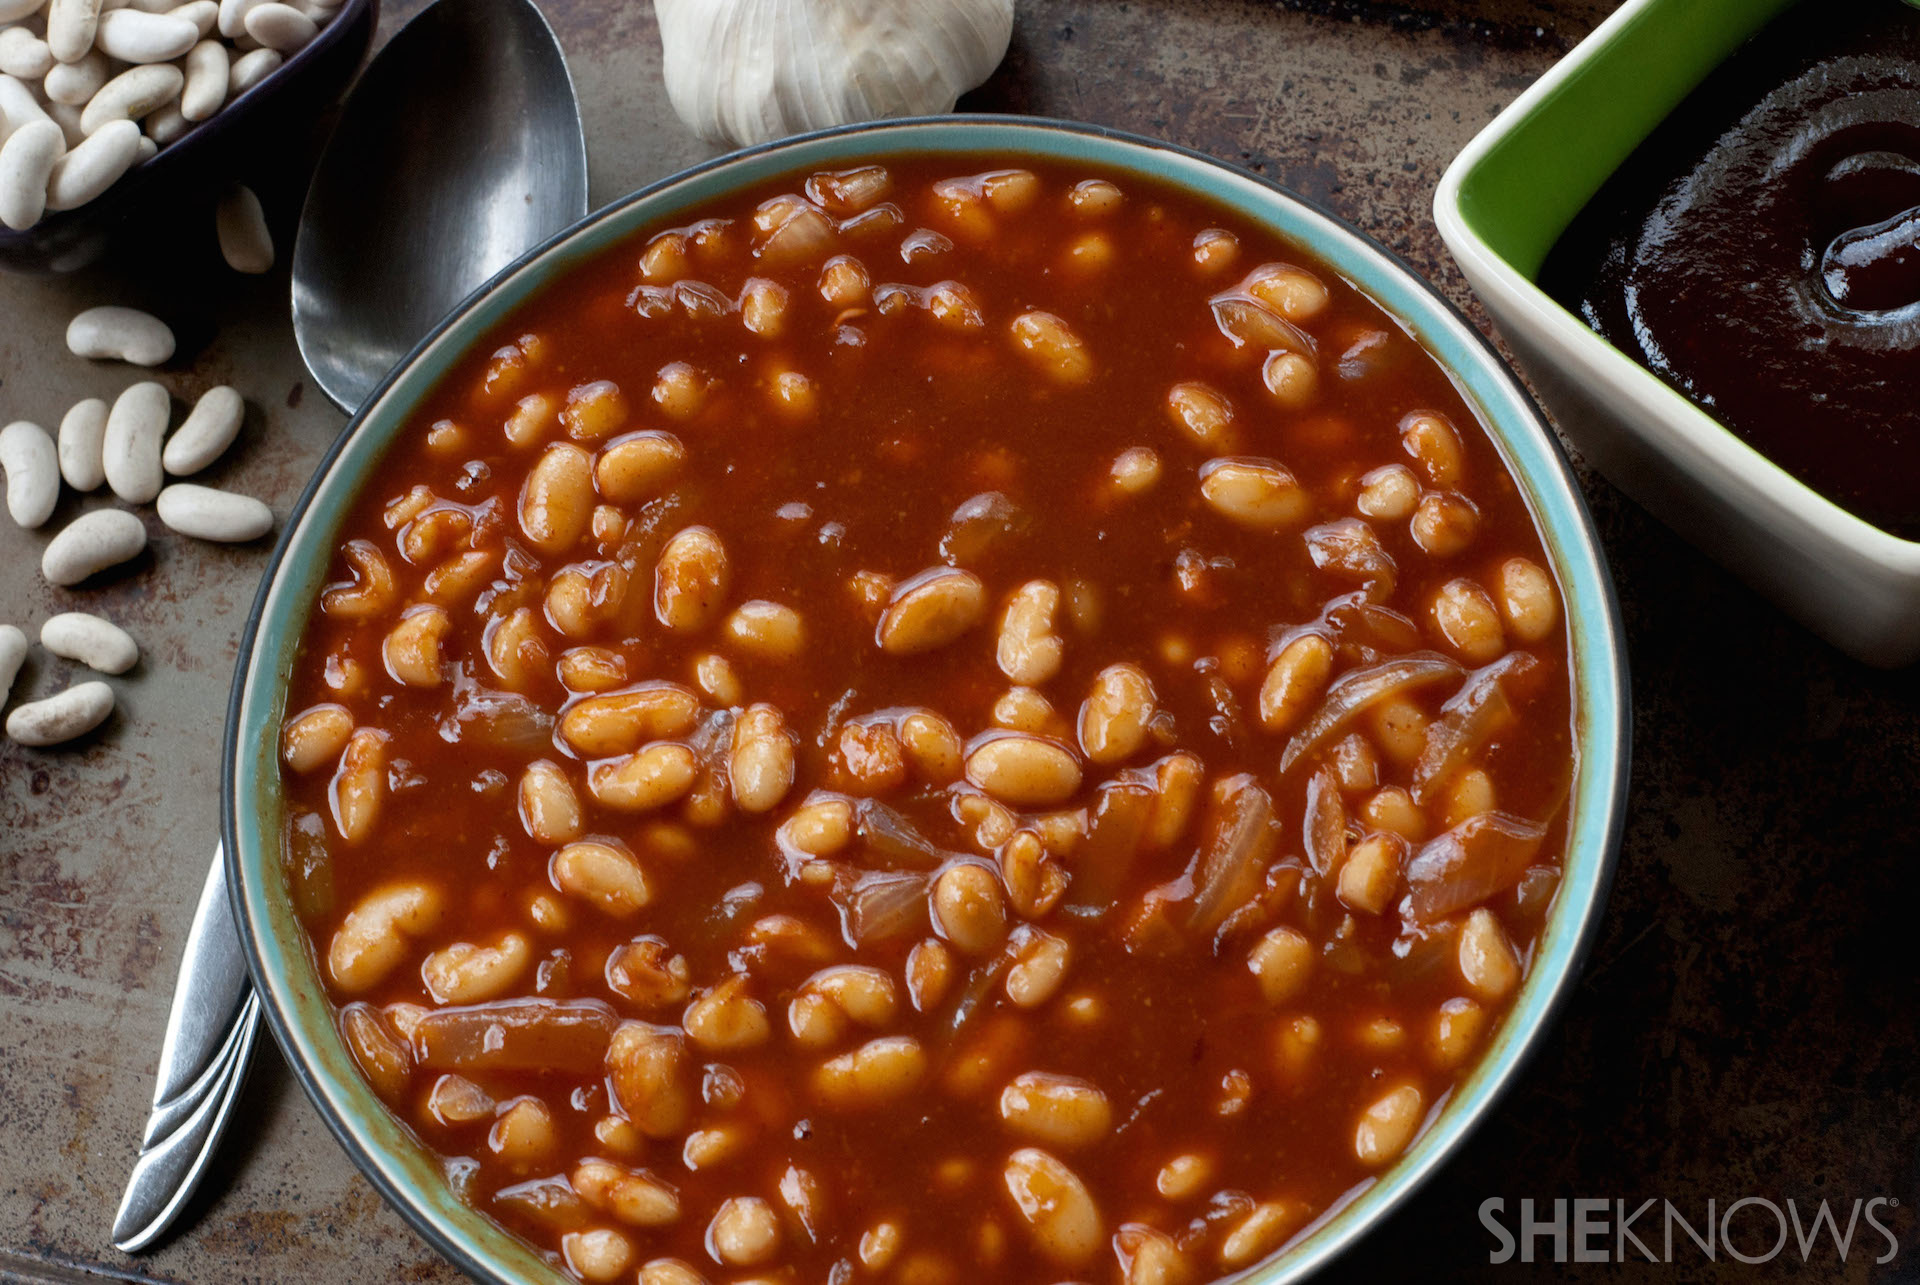 Barbecue sauce and beans spiked with soda